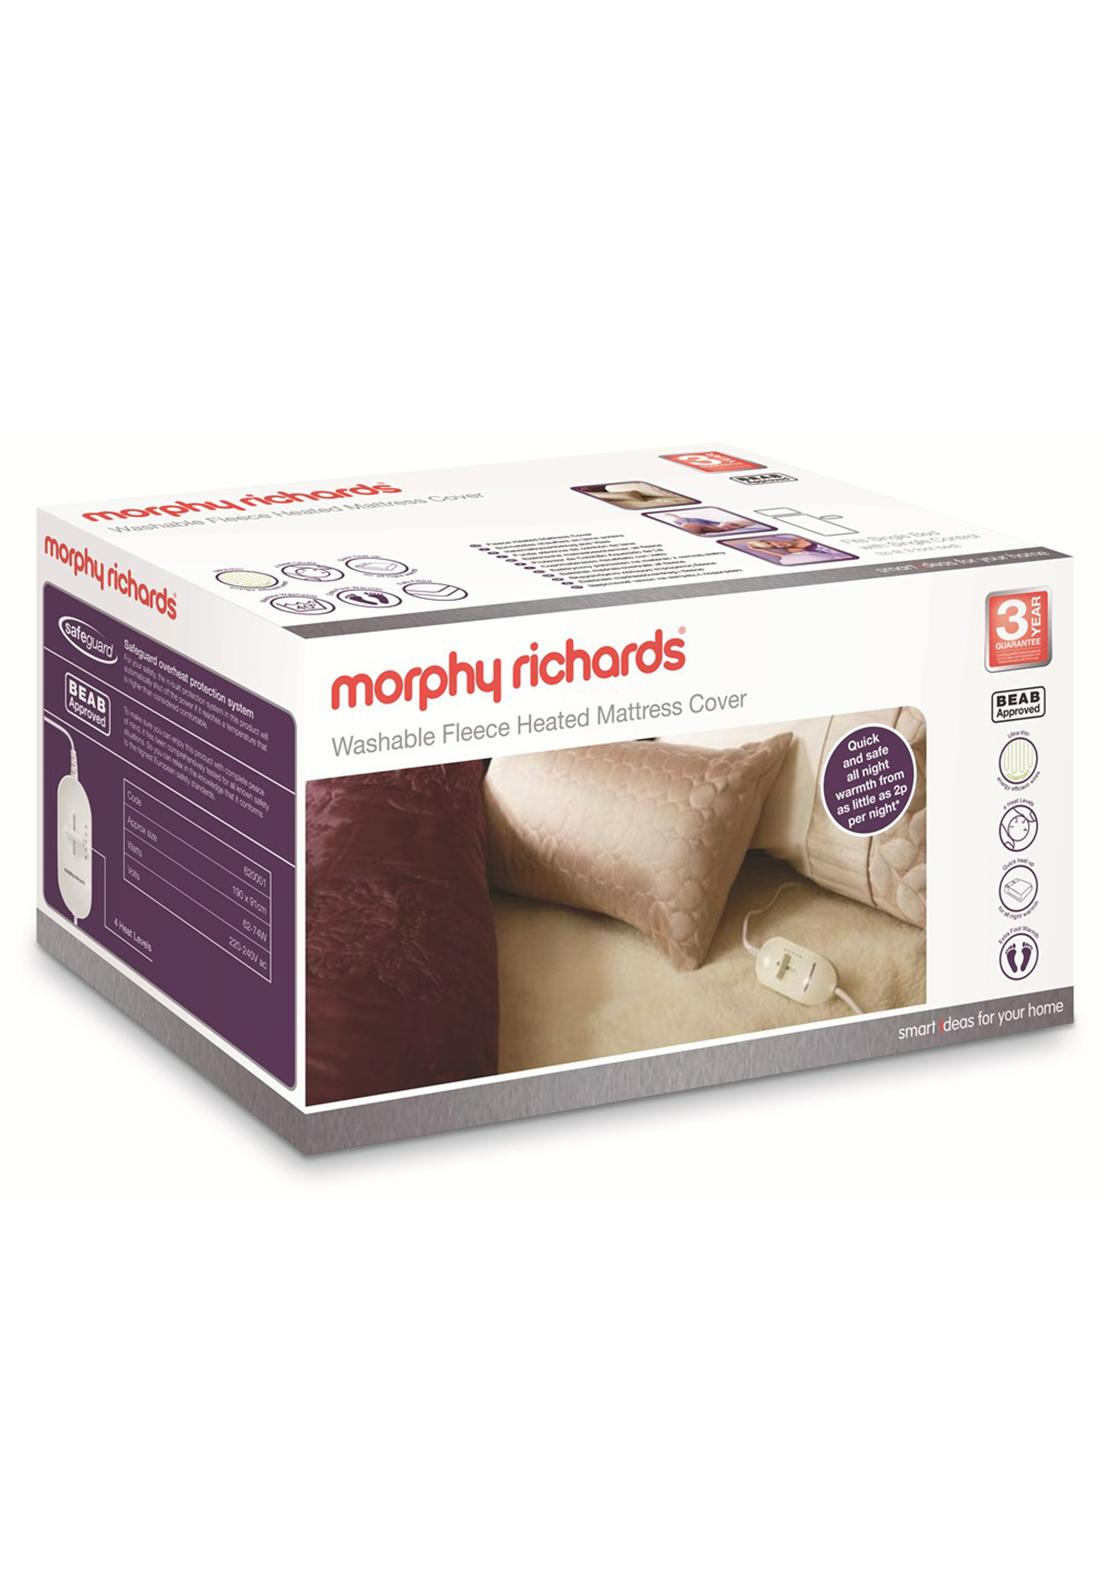 Morphy Richards Washable Fleece Heated Mattress Cover, Double